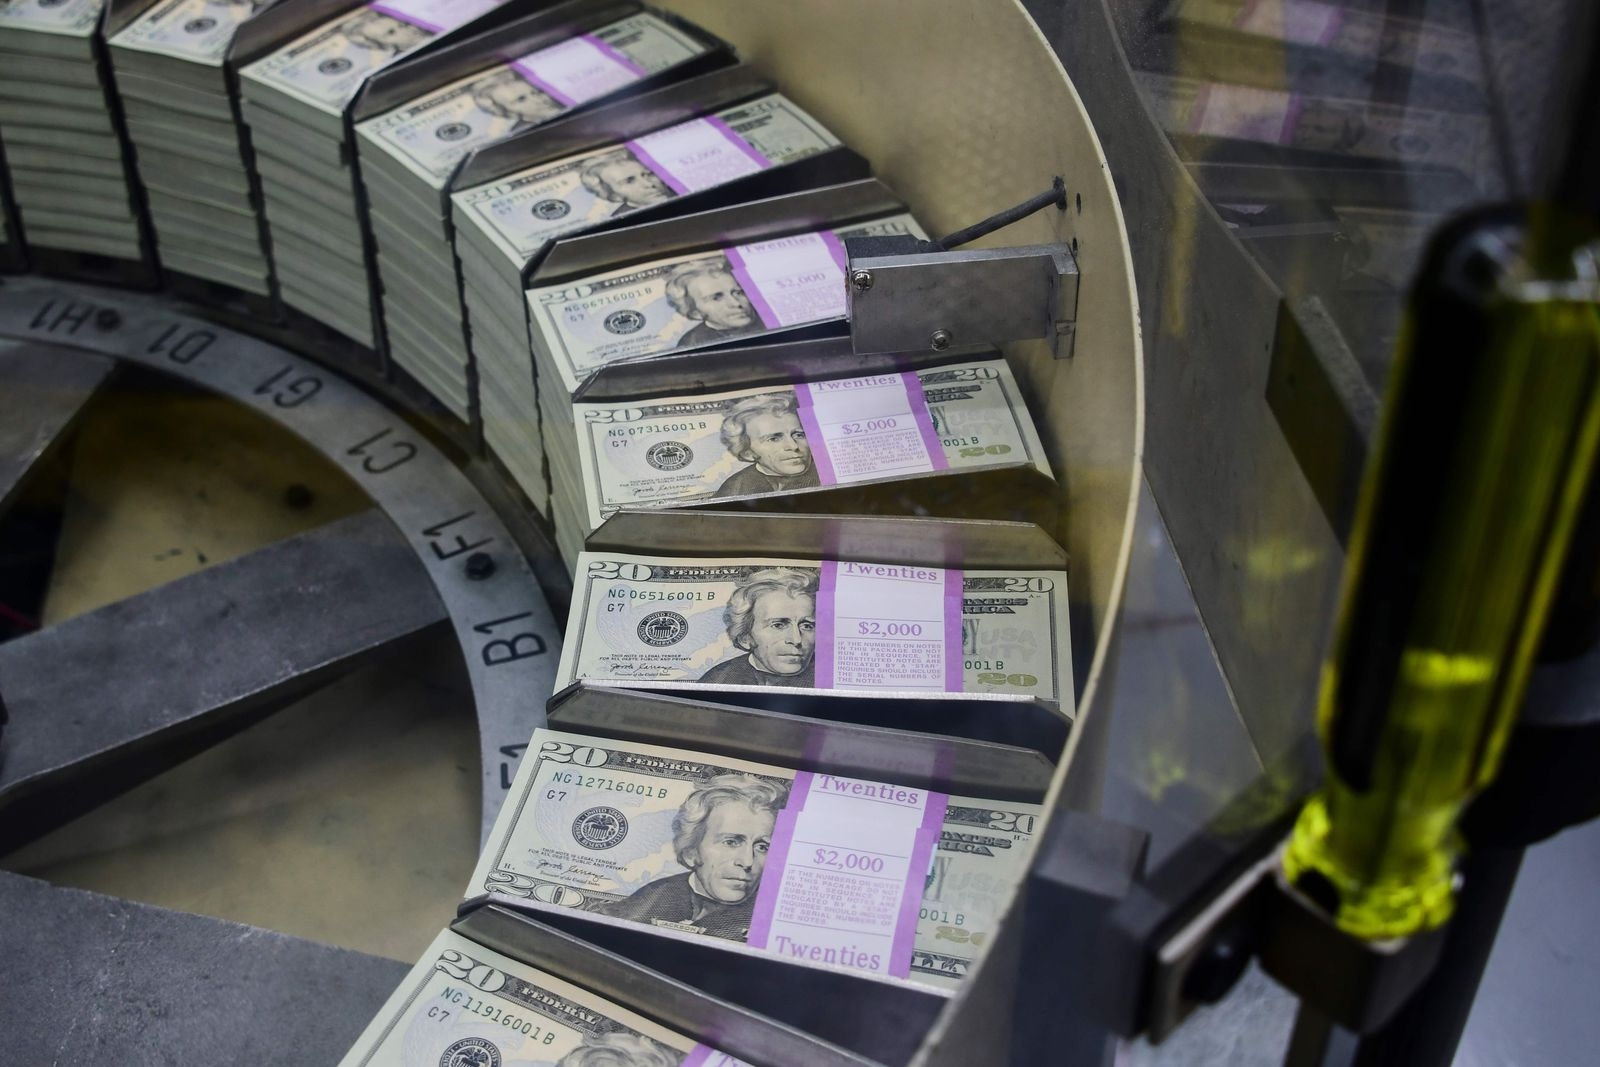 FILES-US-MARKETS-WORLD-CURRENCY